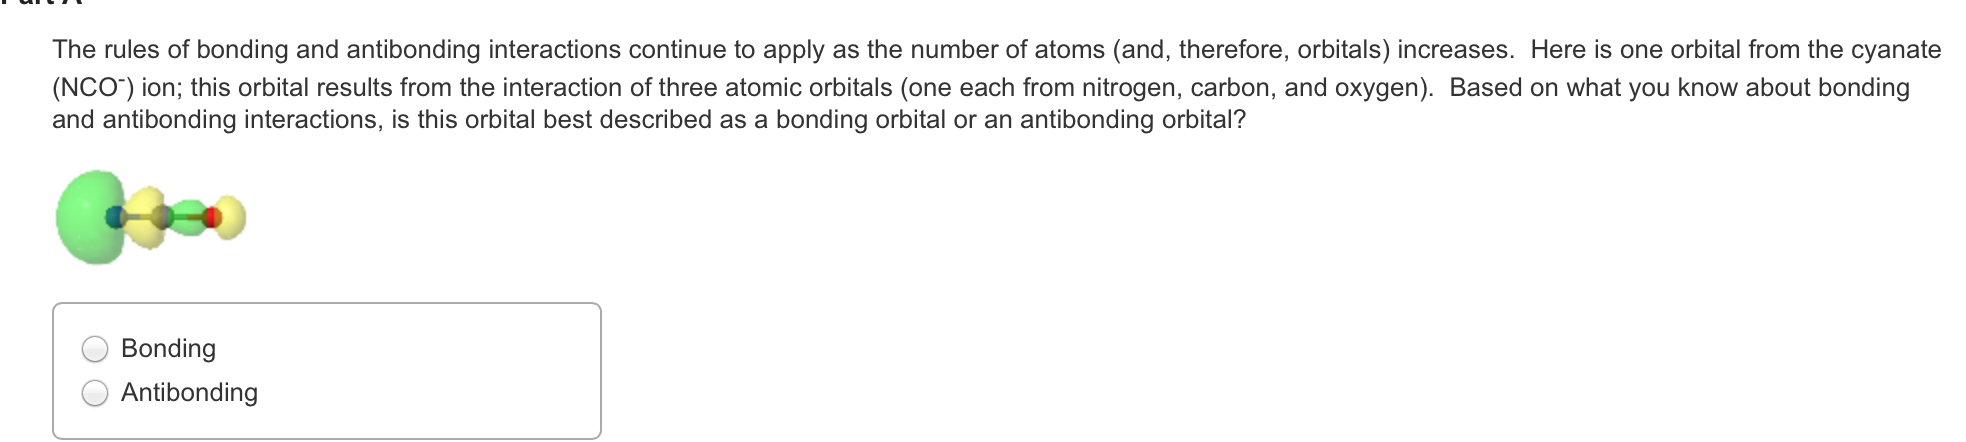 Chemistry archive february 07 2016 chegg the rules of bonding and antibonding interactions continue to apply as the number of atoms and therefore orbitals increases pooptronica